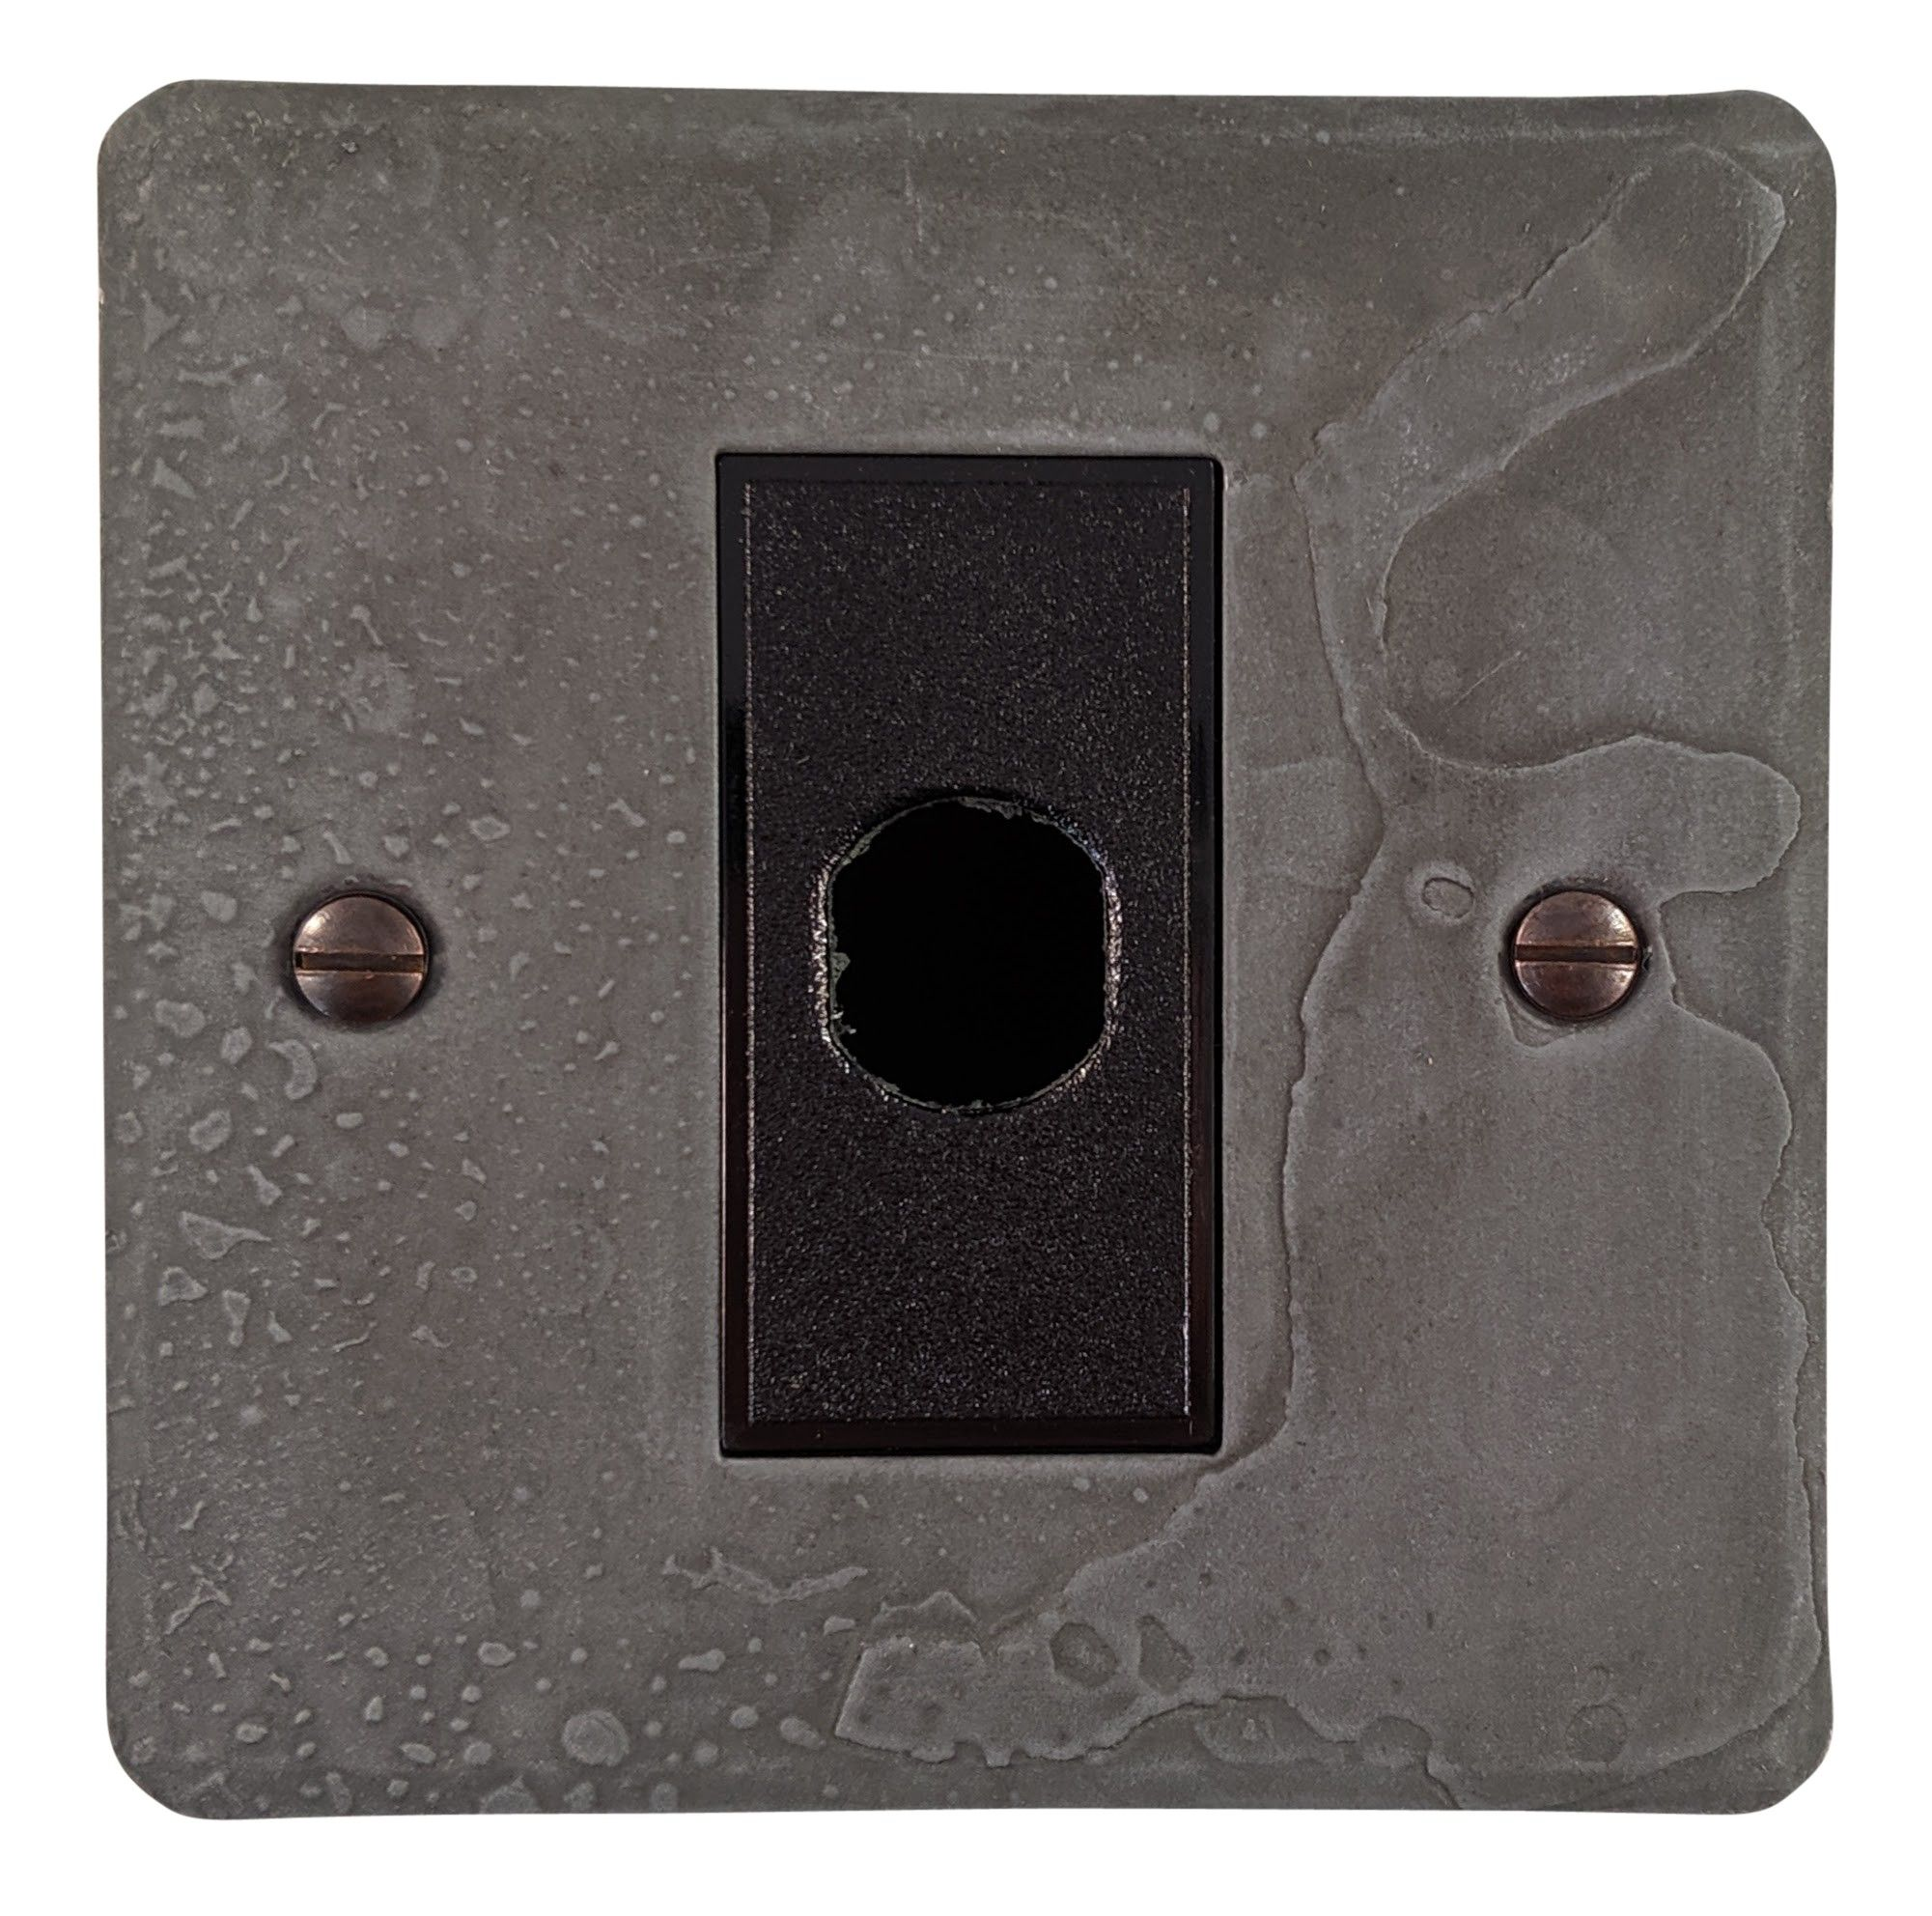 G&H FRP79B Flat Plate Rustic Pewter 1 Gang Flex Outlet Plate